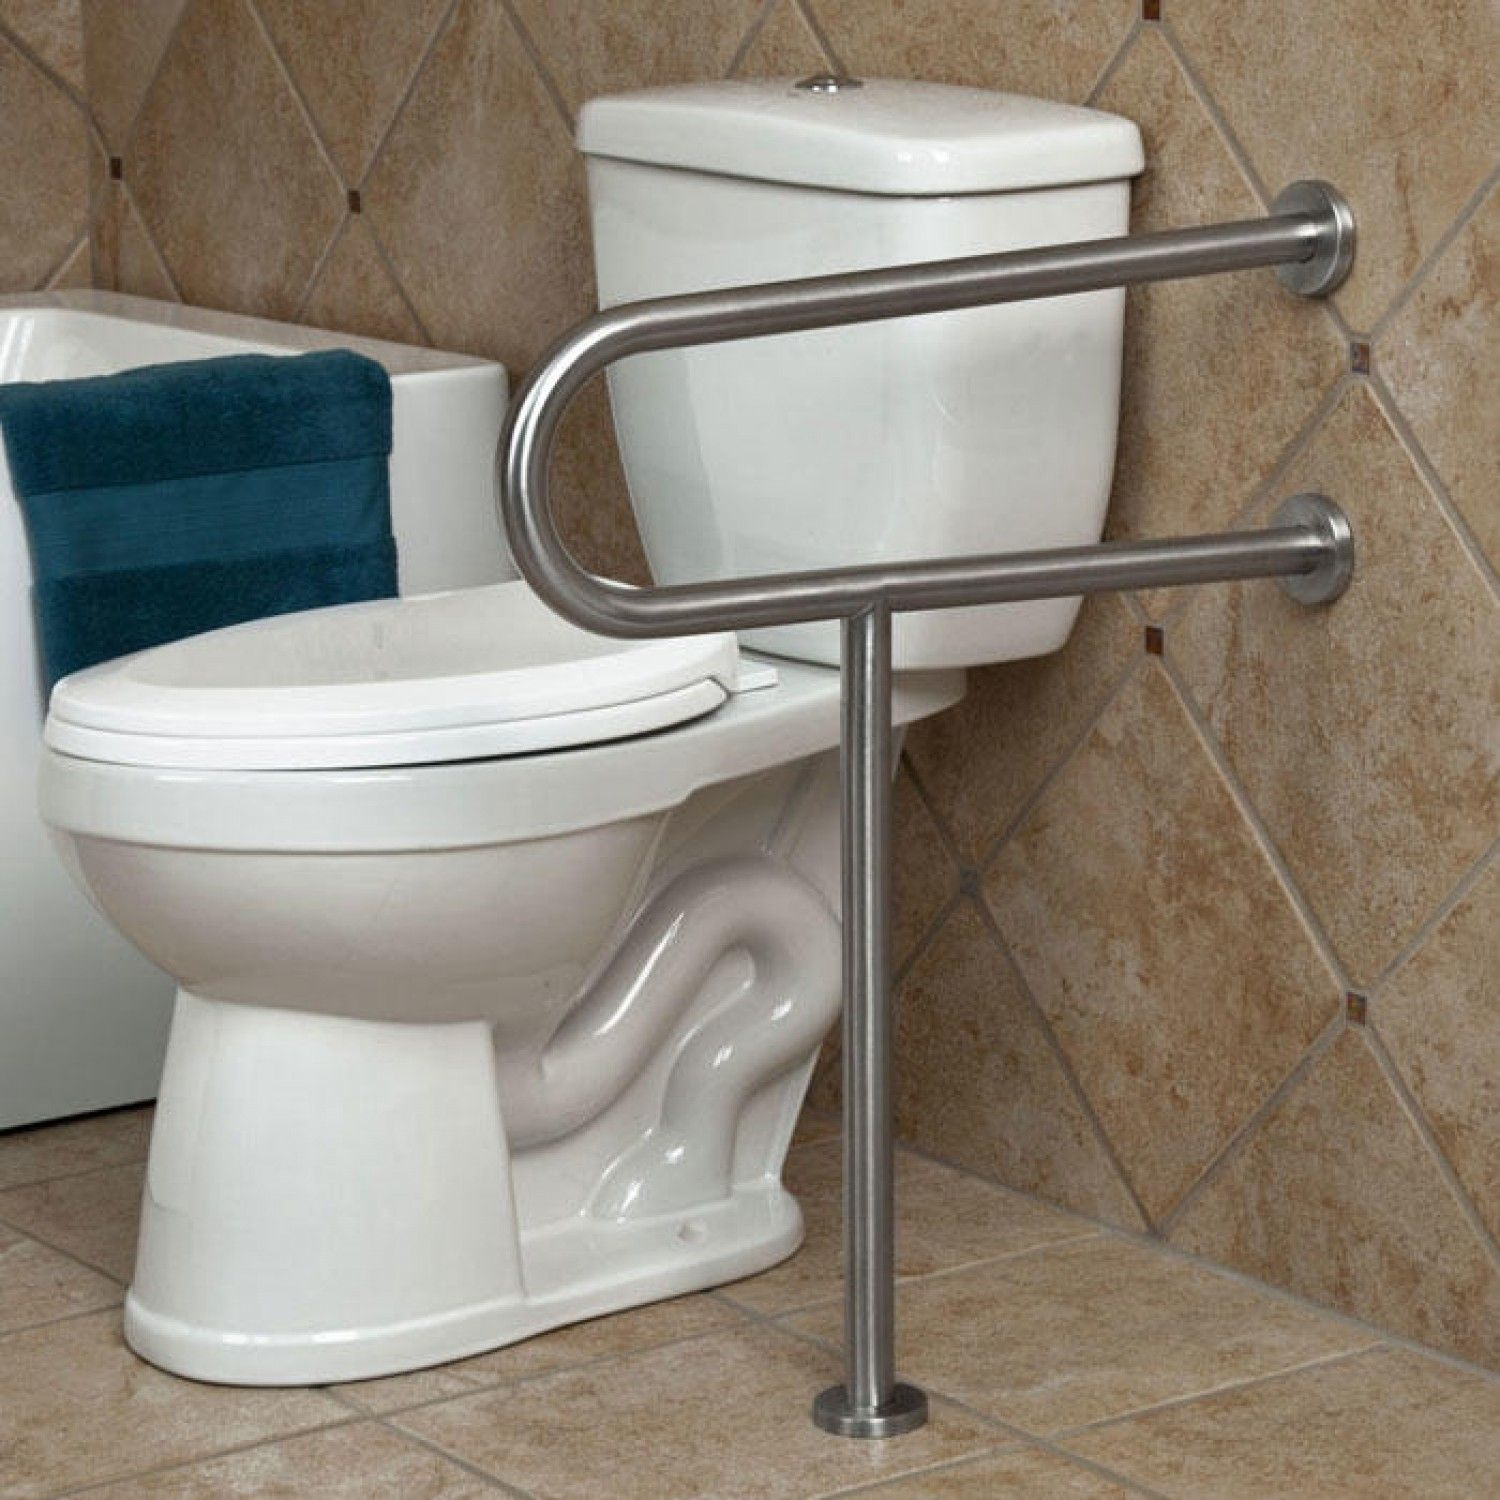 Handicap Bathroom Toilet Bars   Bathroom Design Ideas. Handicap Bathroom Toilet Bars   Bathroom Design Ideas   Handicap